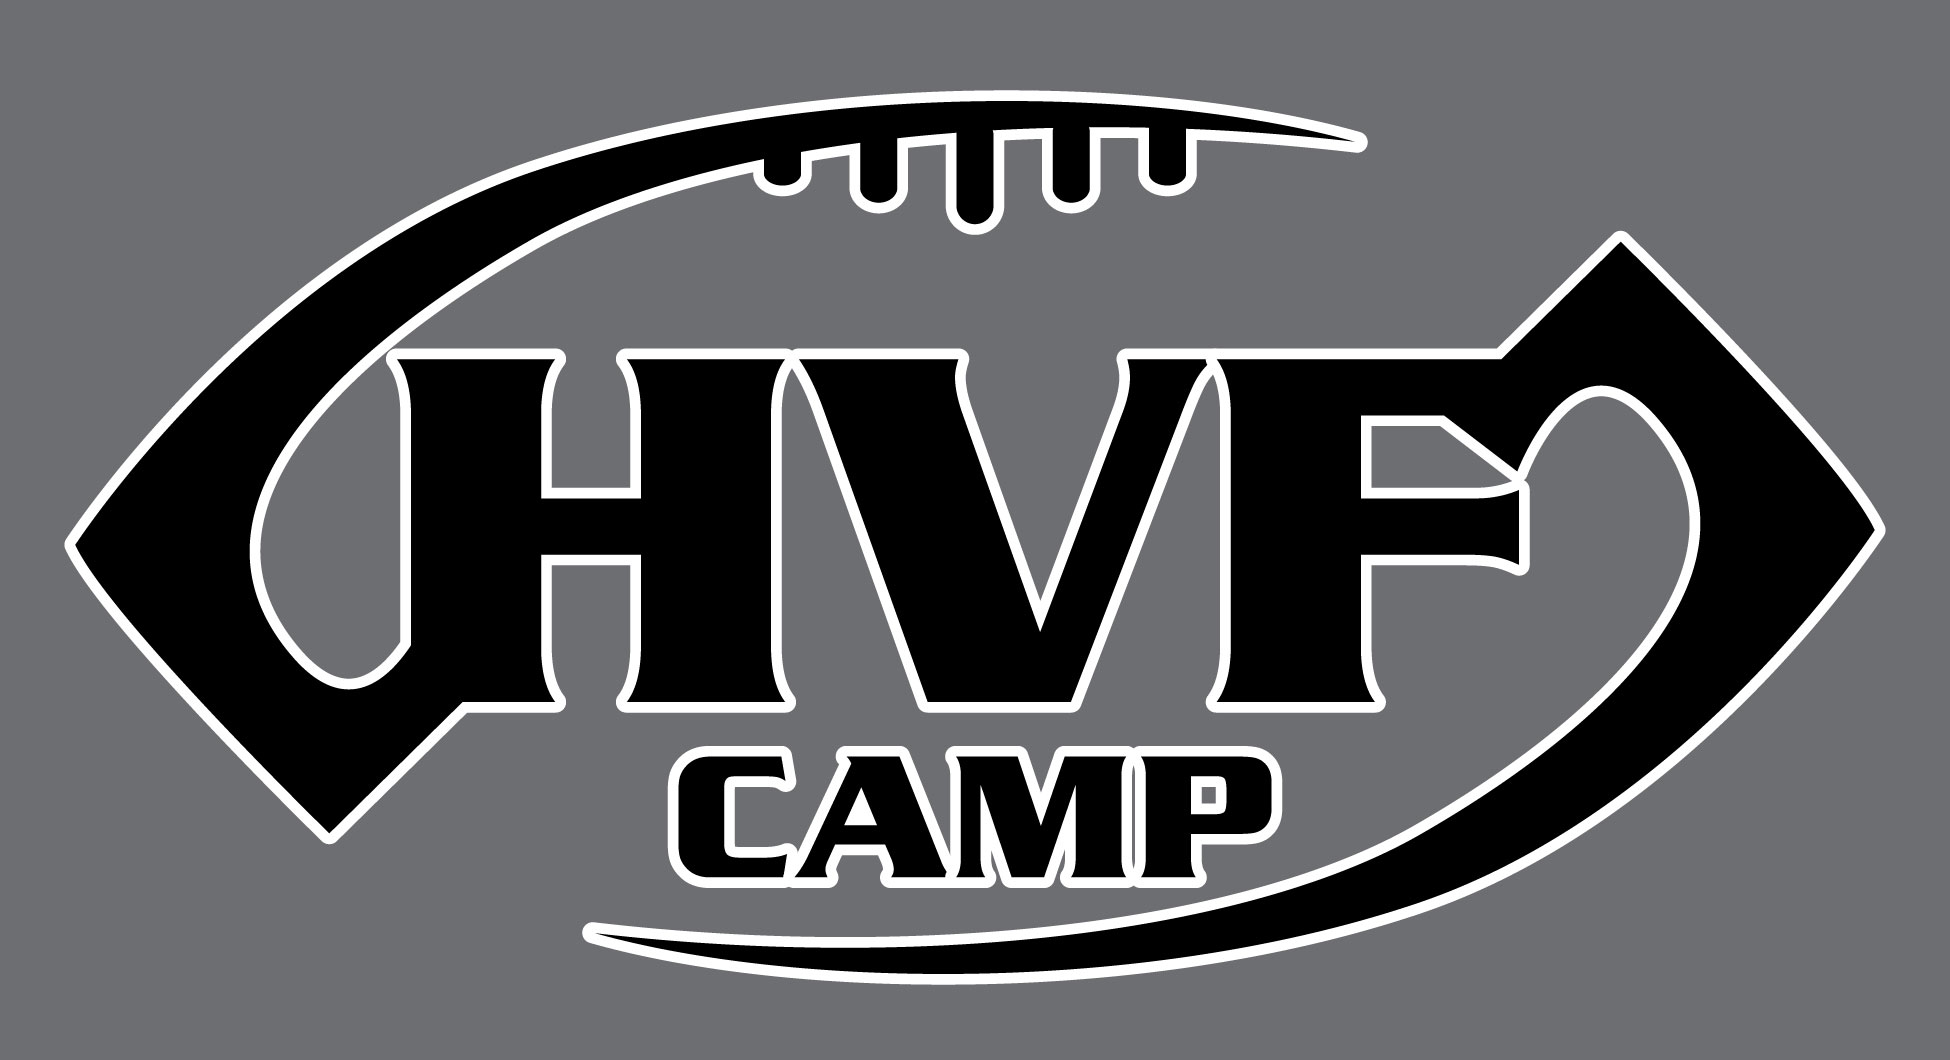 2018 HUDSON VALLEY FOOTBALL YOUTH CAMP